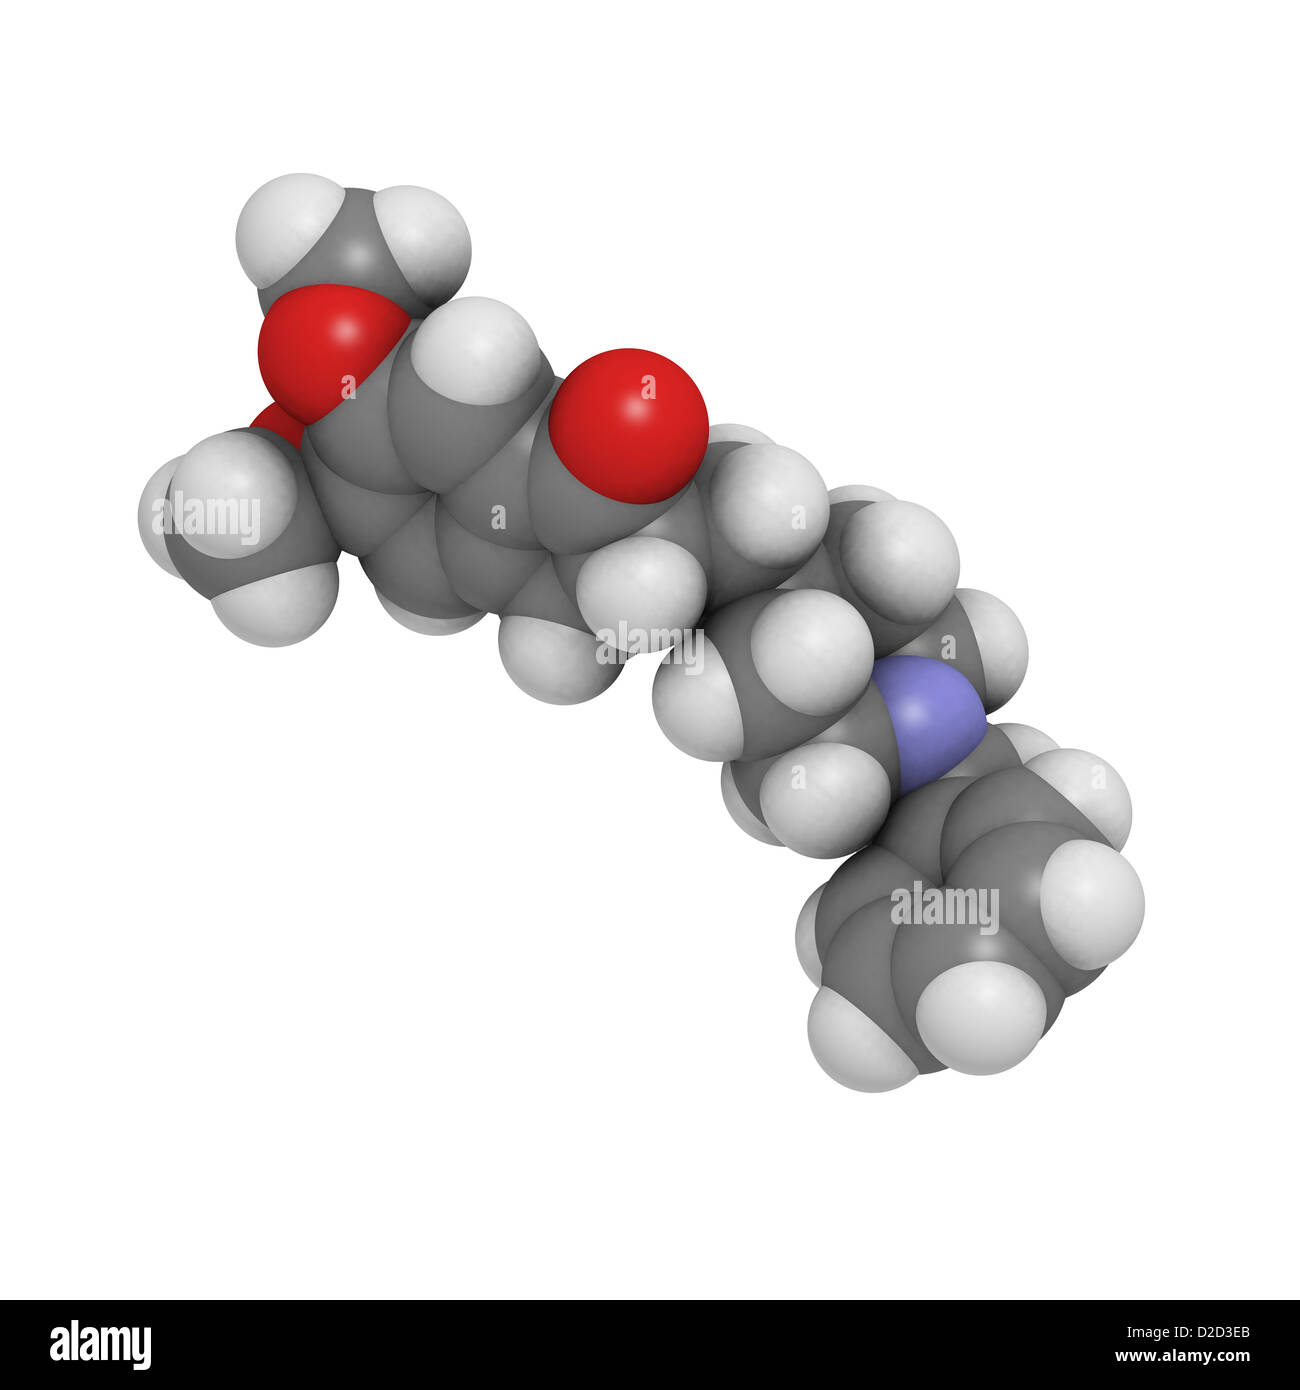 Donepezil Alzheimer's drug acts to inhibit the enzyme acetylcholinesterase Atoms spheres colour-coded Stock Photo